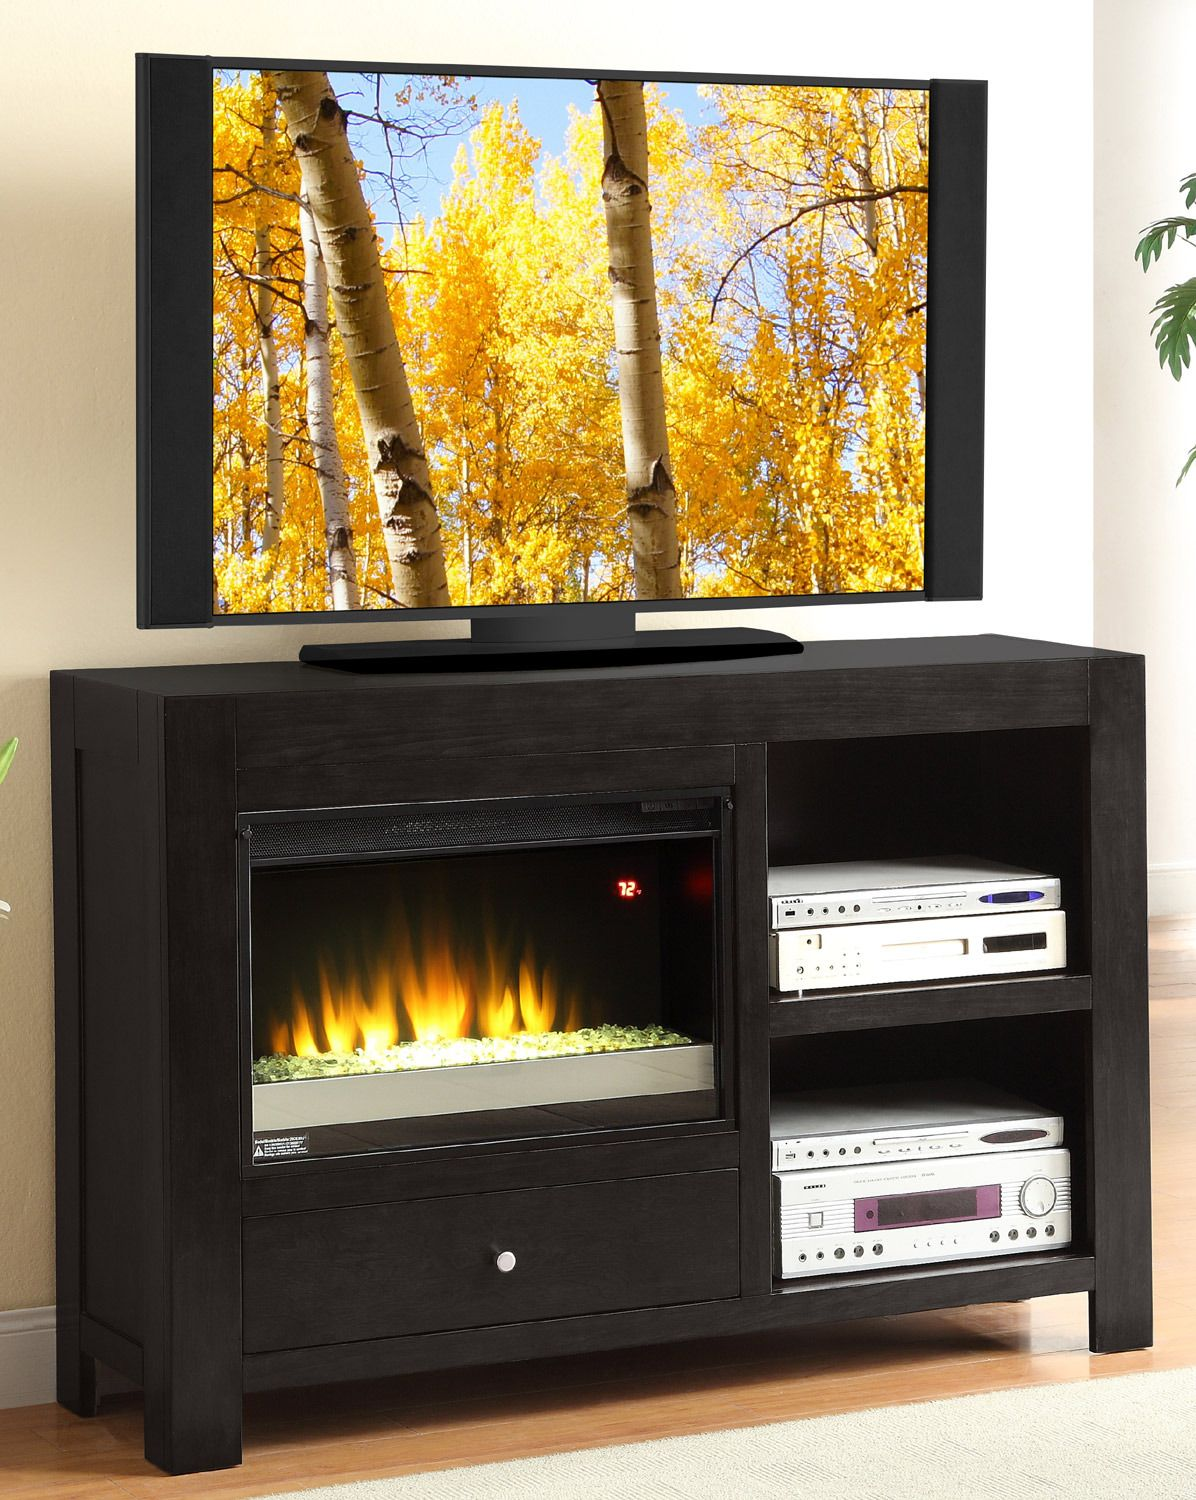 Montgomery 26in electric fireplace and tv stand cherry 26mm2490 c233 - Cosmopolitan 54 Fireplace Console Legends Home Gallery Stores